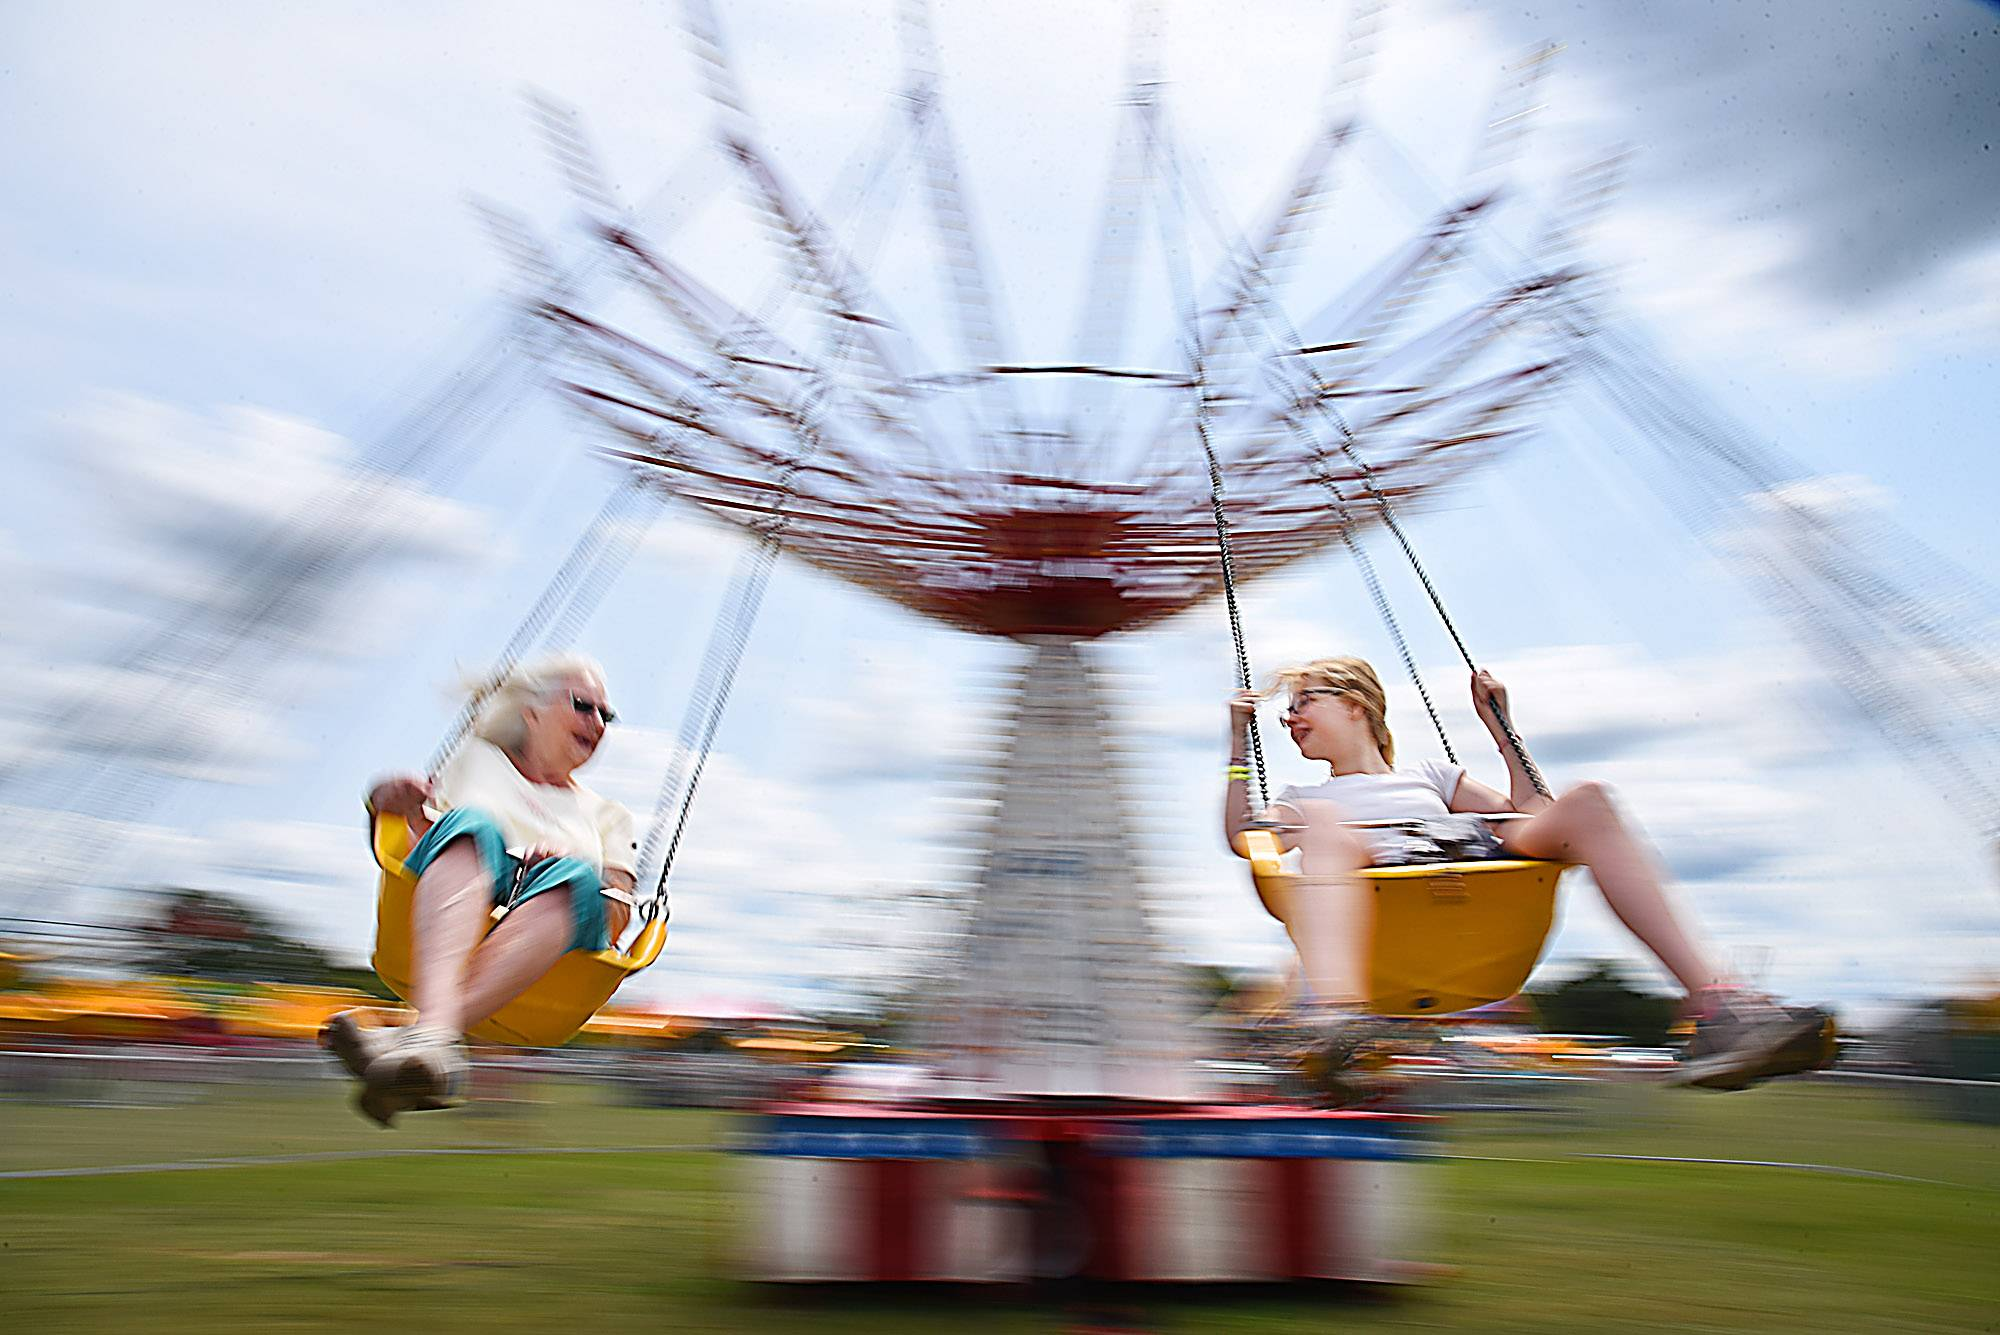 Ellie Marchialette, 12, looks at the her grandmother Karen Jones of Hampshire as the pair spin on the Musical Chairs ride Saturday at the Coon Creek Country Days festival in Hampshire.